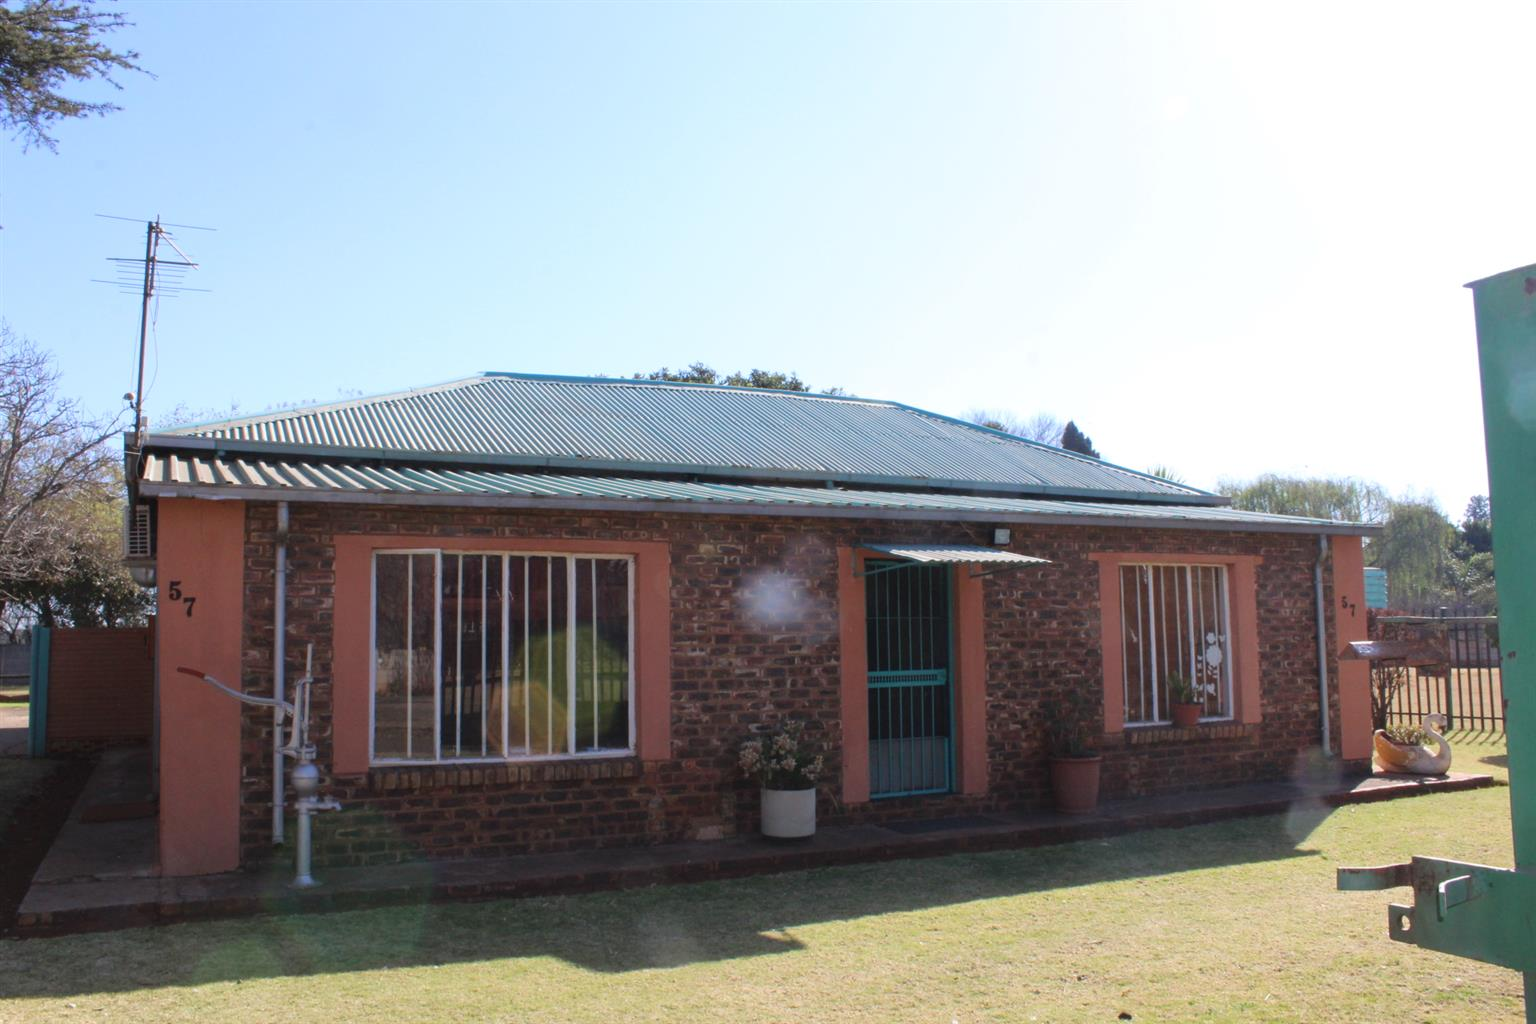 BENONI-INDUSTRIAL USES-SMALL PLOT-SMALL HOUSE-SMALL PRICE -MUCH POTENTIAL-(IN PETIT) ONLY R1.4 Mil